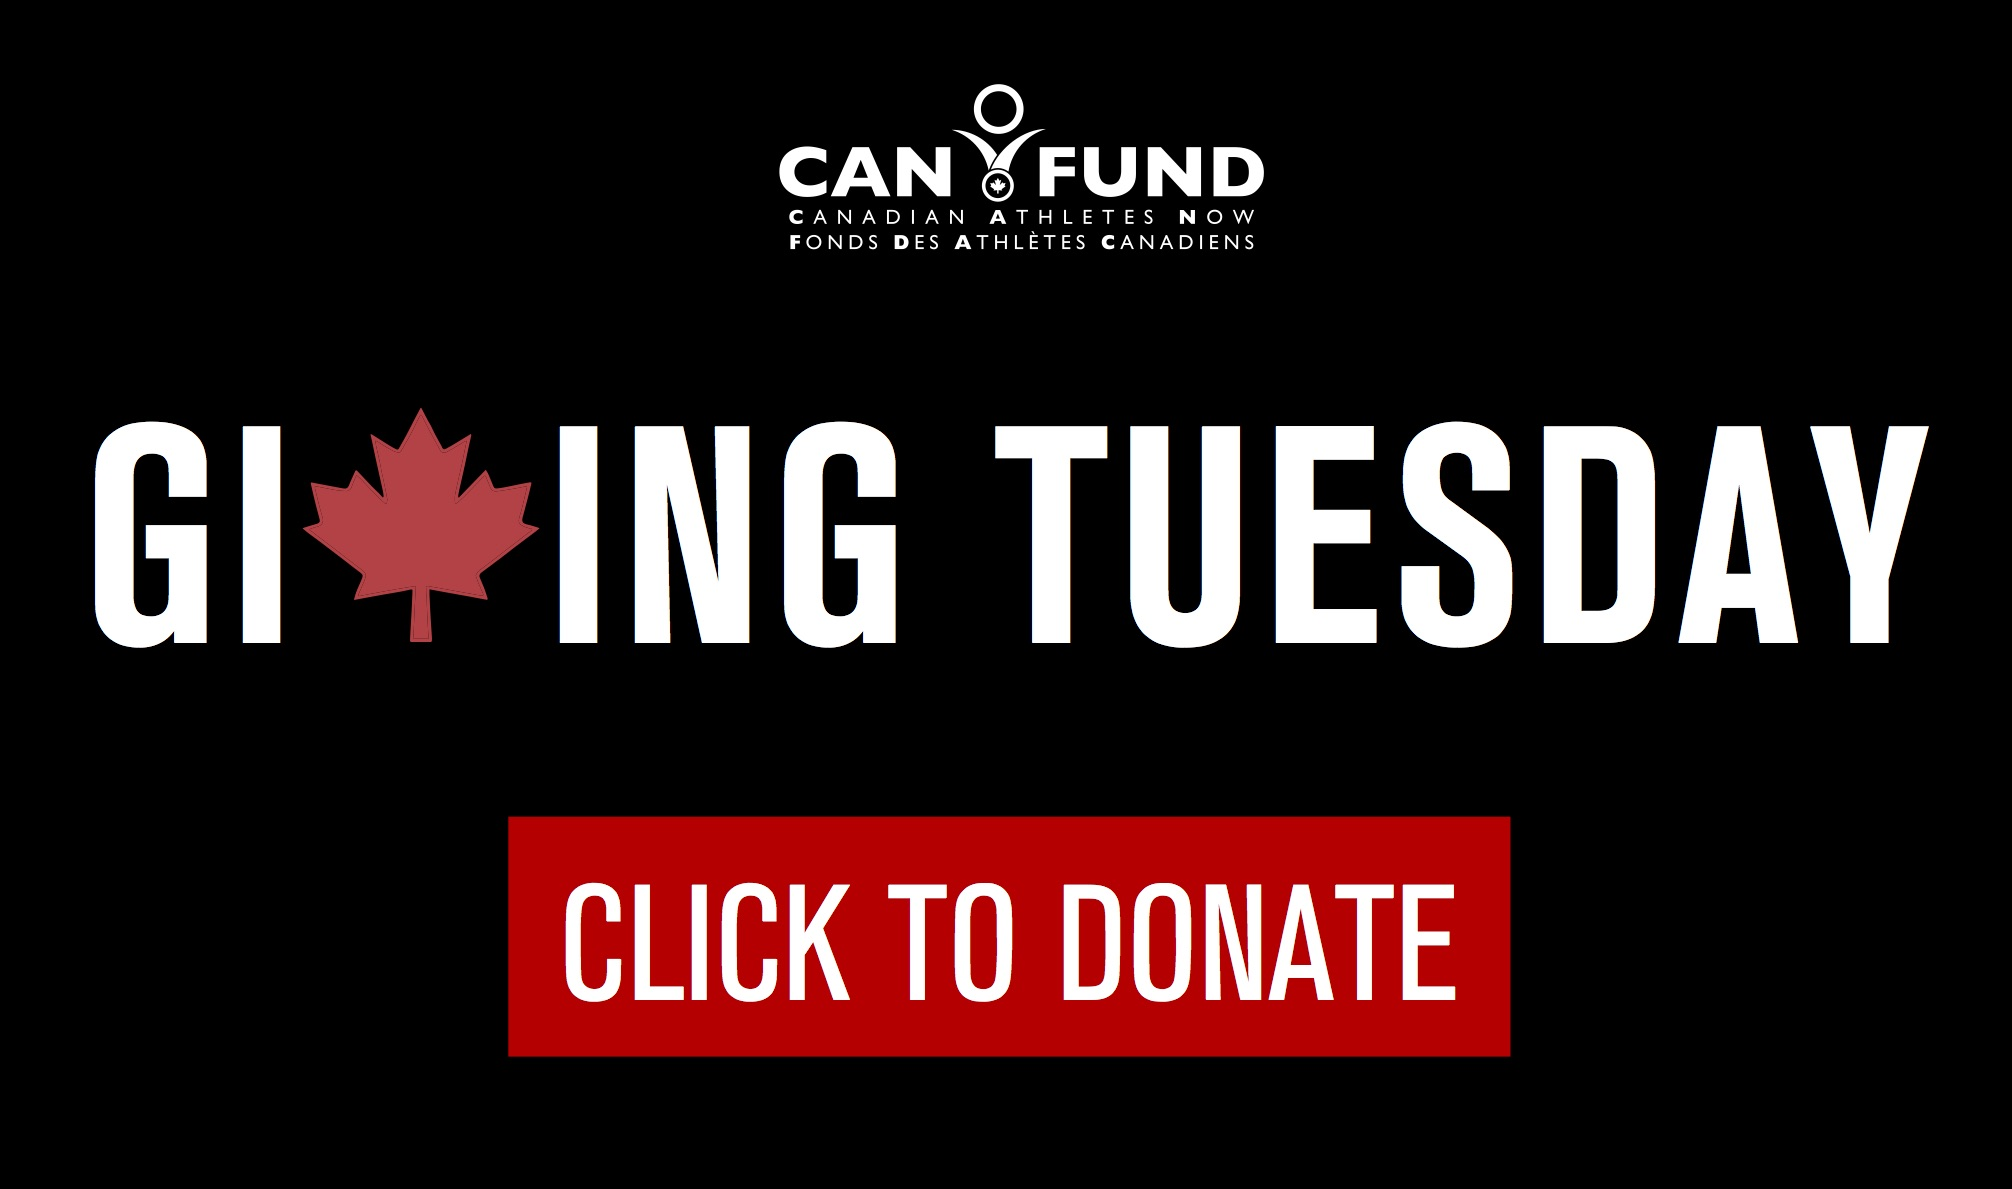 giving tuesday homepage graphic